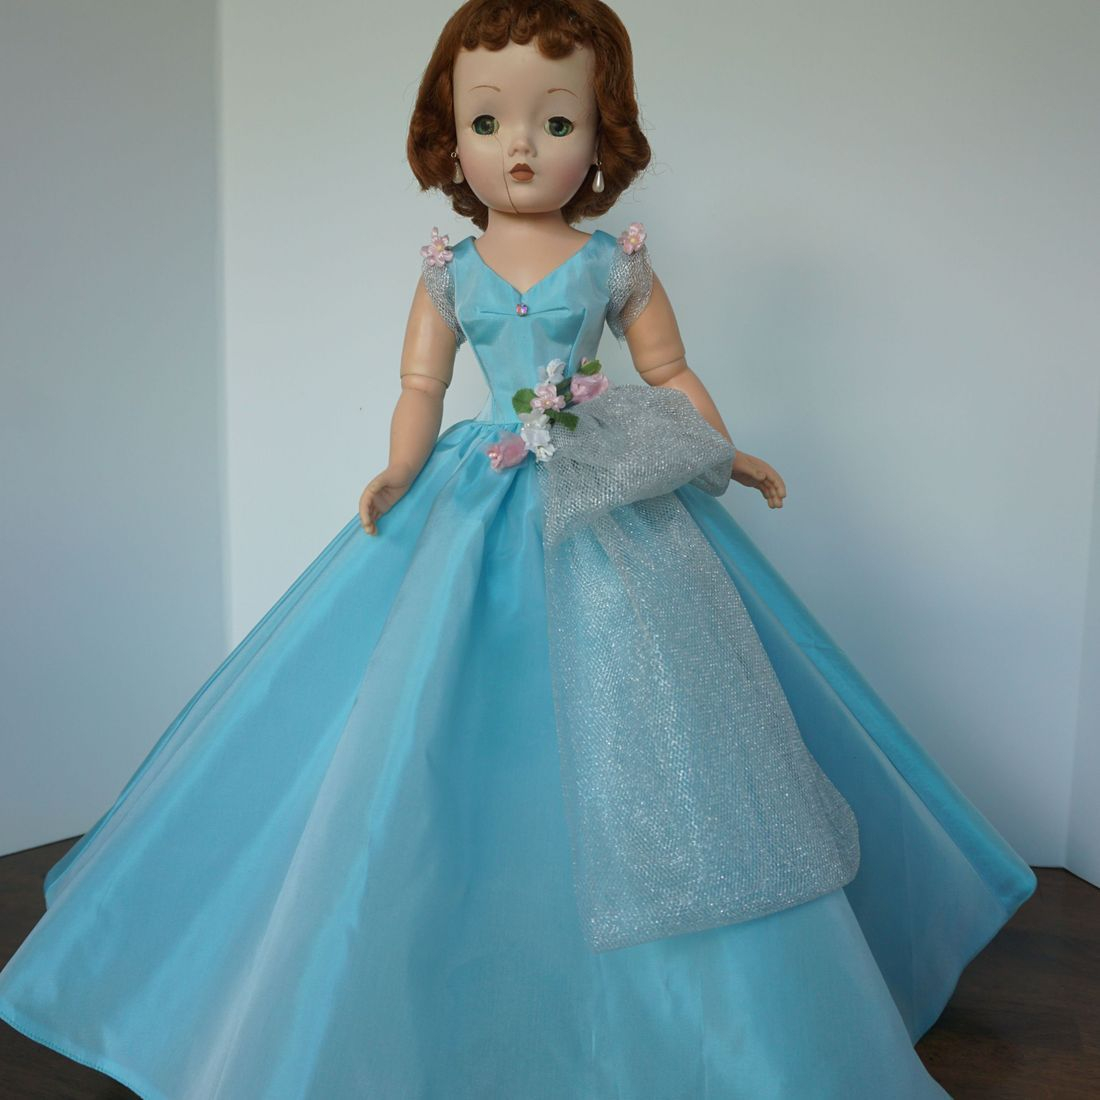 Kitty Collier Doll Dress